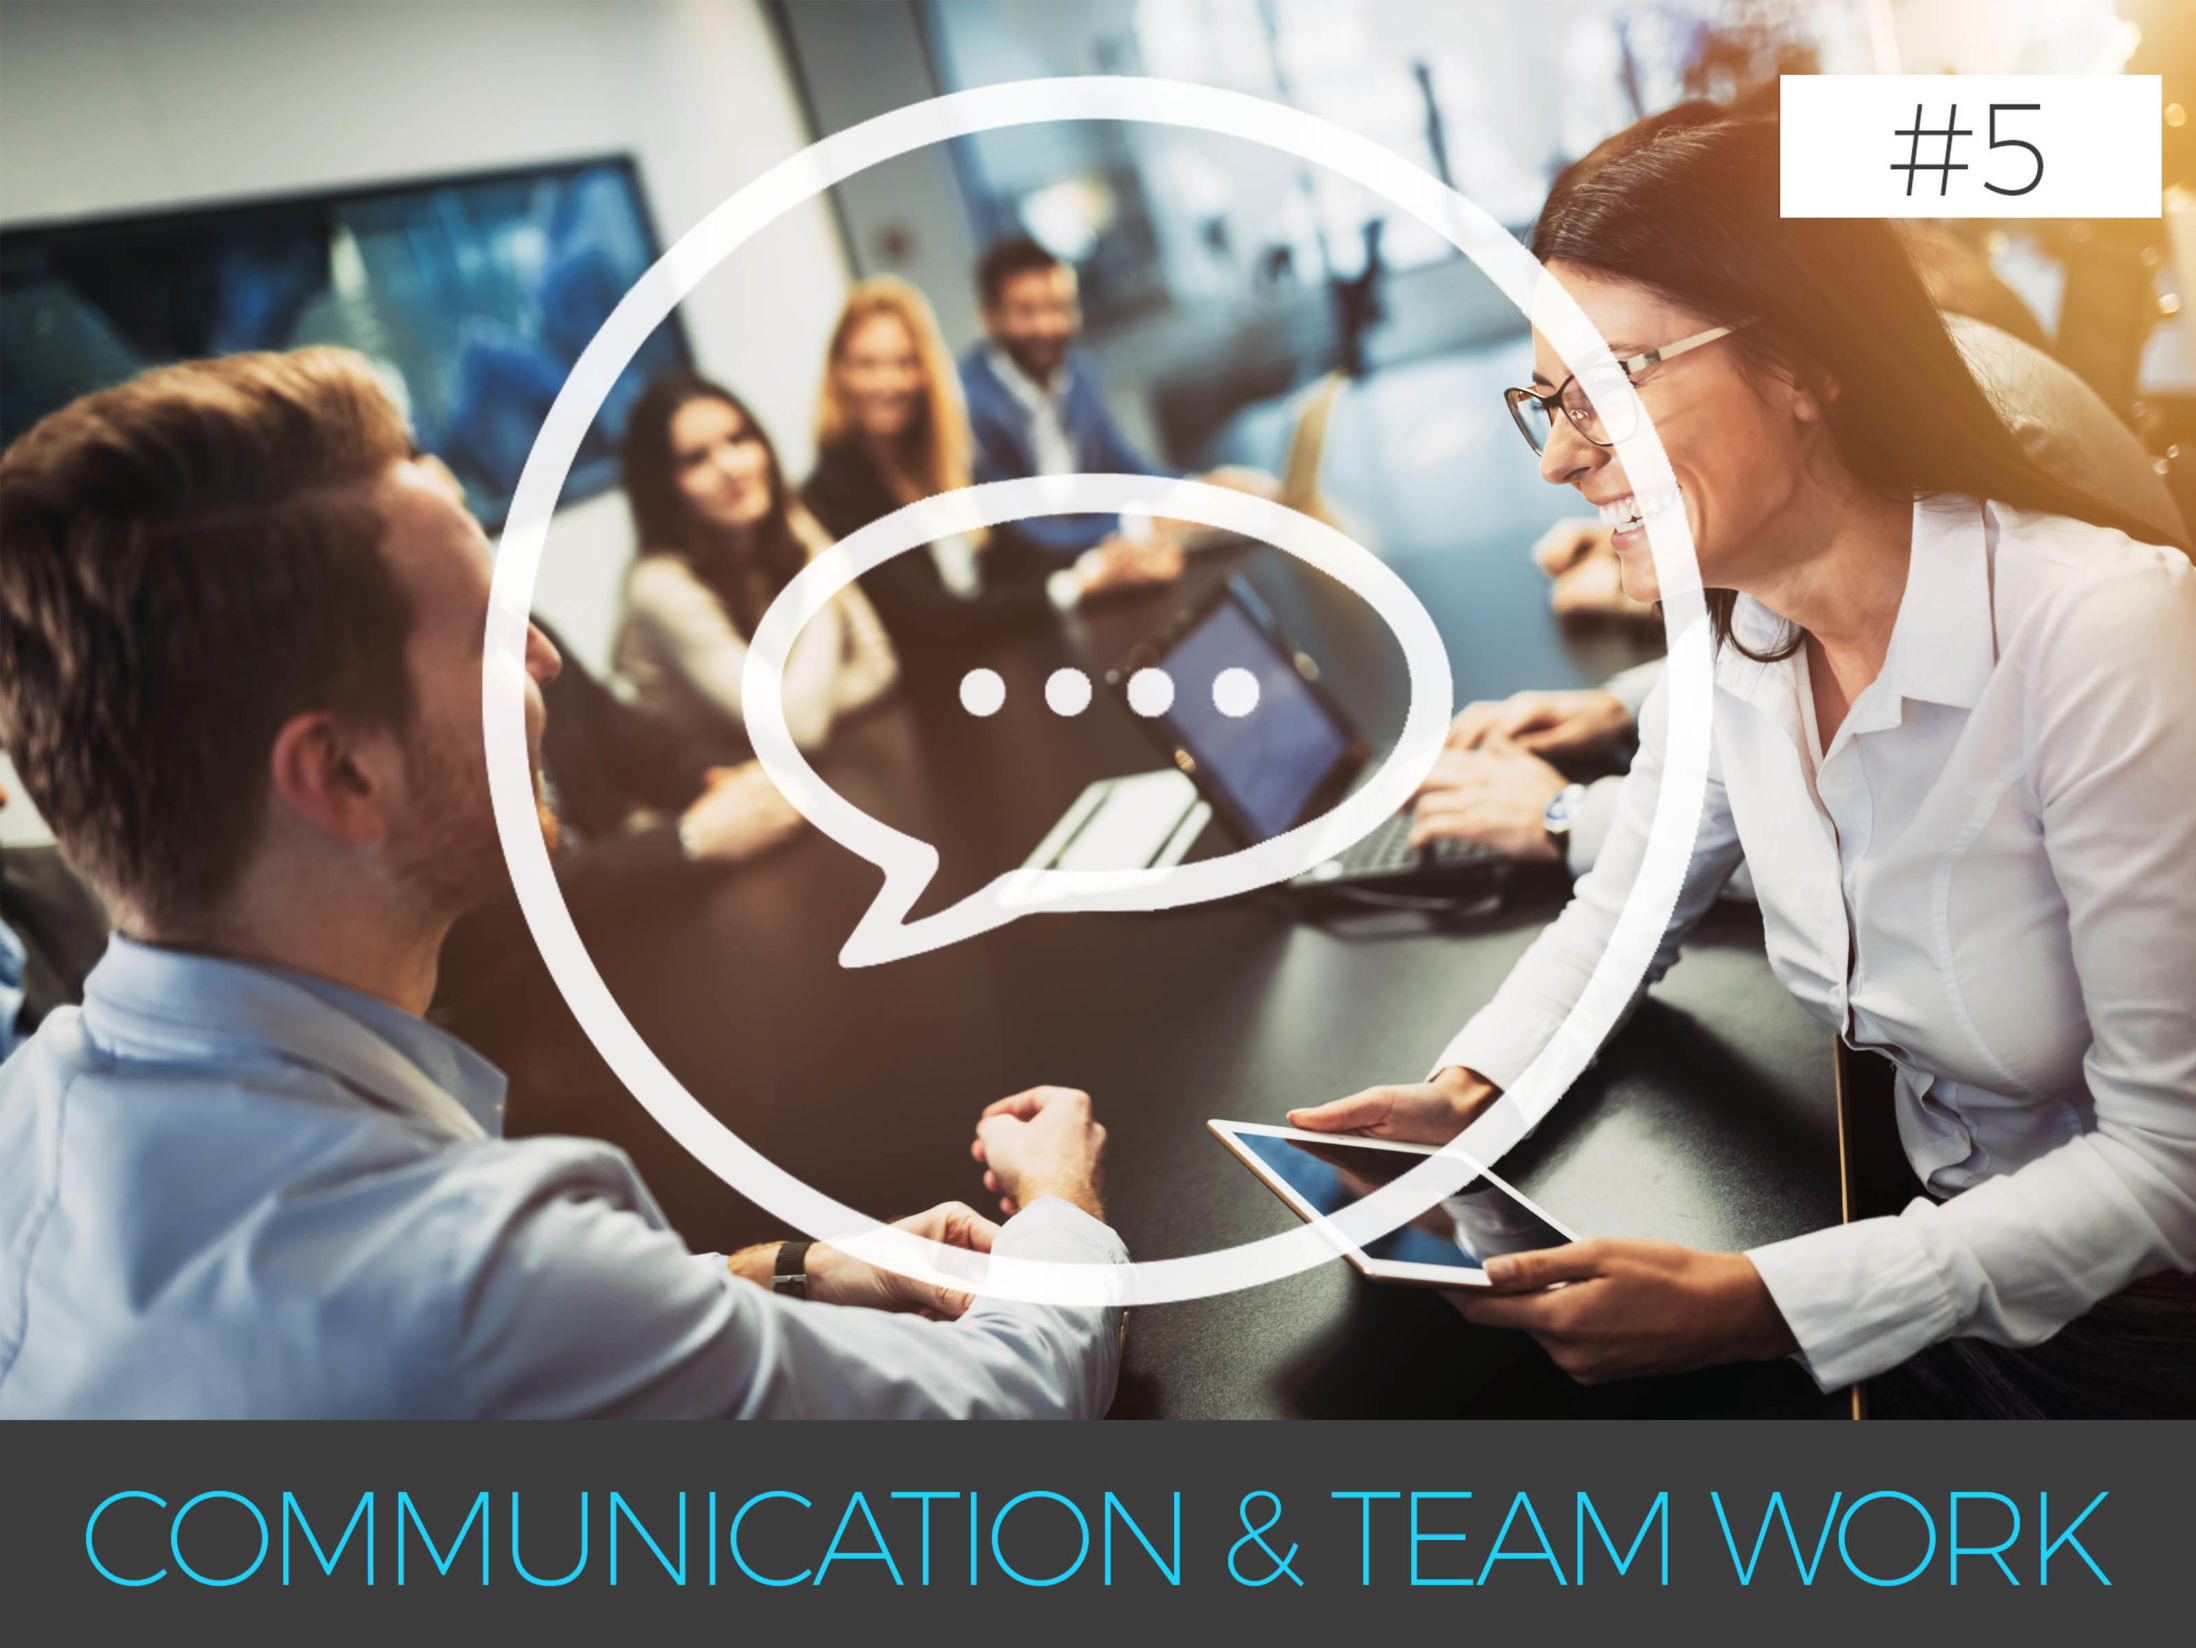 Why is Team Building so Important - 5. Communication & Team Work